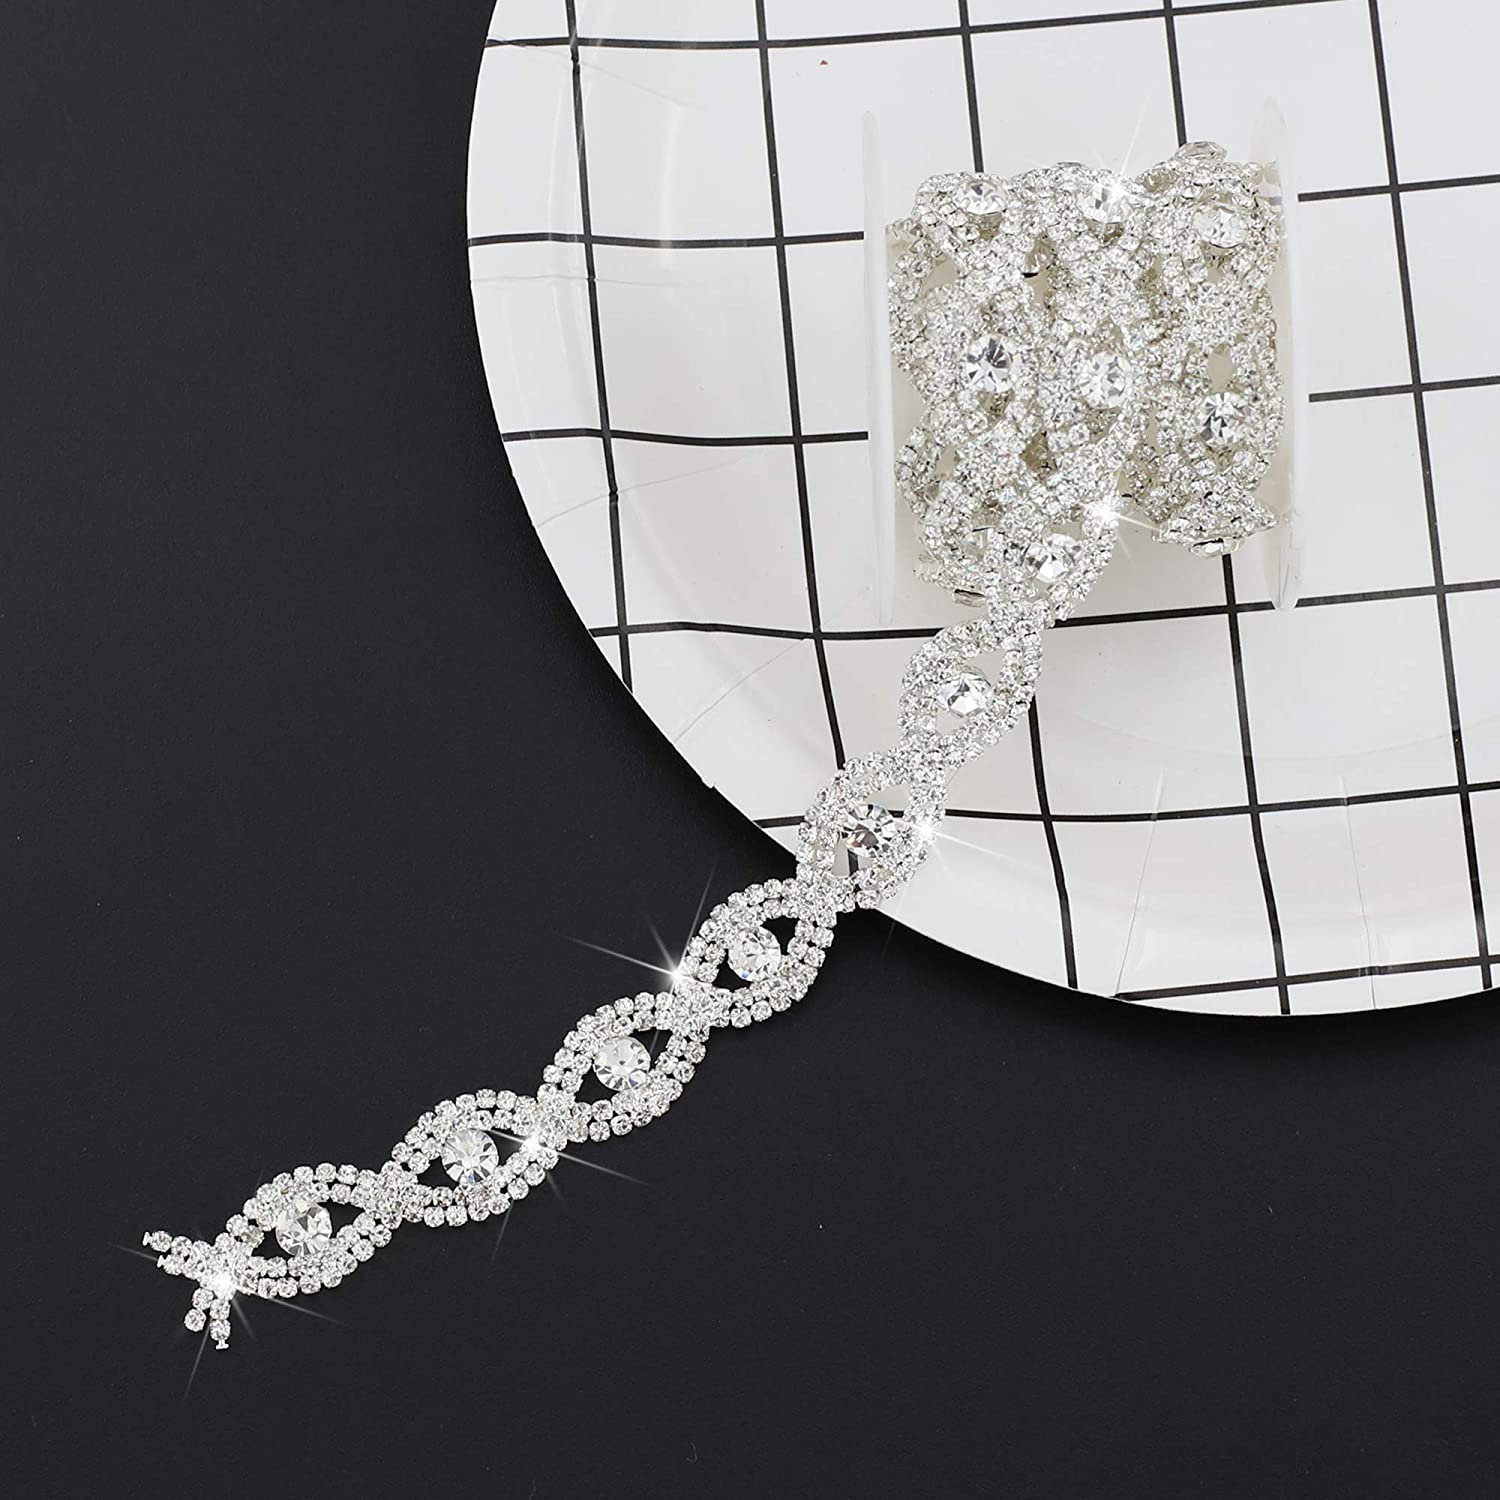 SHINYTIME Rhinestone Chain Trim Banding Diamond Applique Rhinestones for Crafts Clothes and Bridal Bouquet Embellishments Exquisite Wedding and Easter Ideas Tassel 1